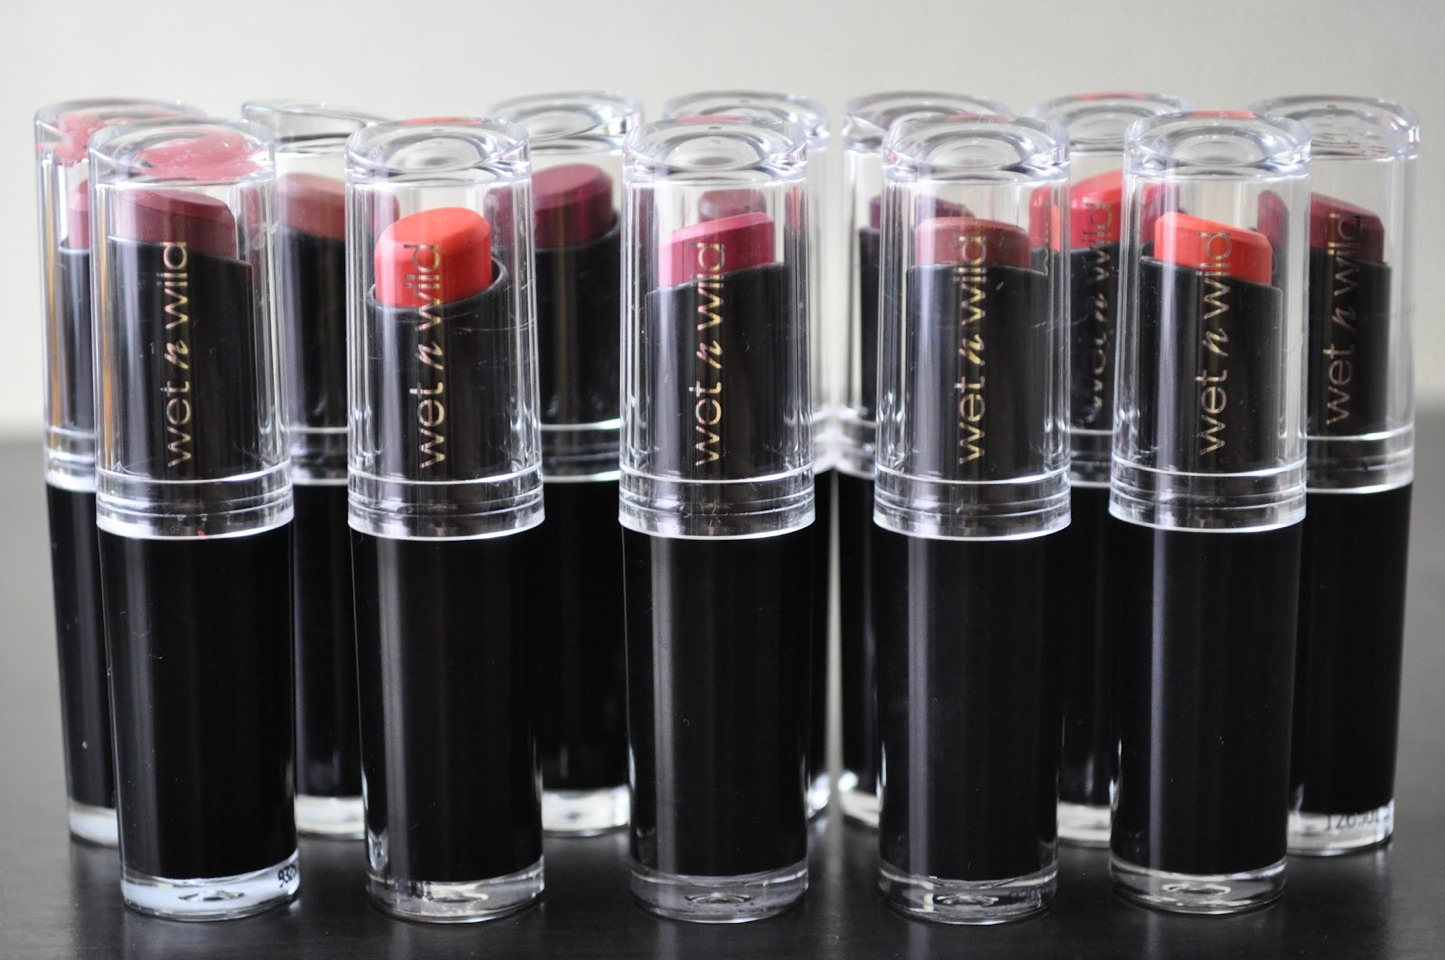 Wet n Wild's Mega Last Lipstick Semi-matte formula that stays on all day! 1.99 at Walgreens! (Hurry, they're on sale for 2 for 3$!)